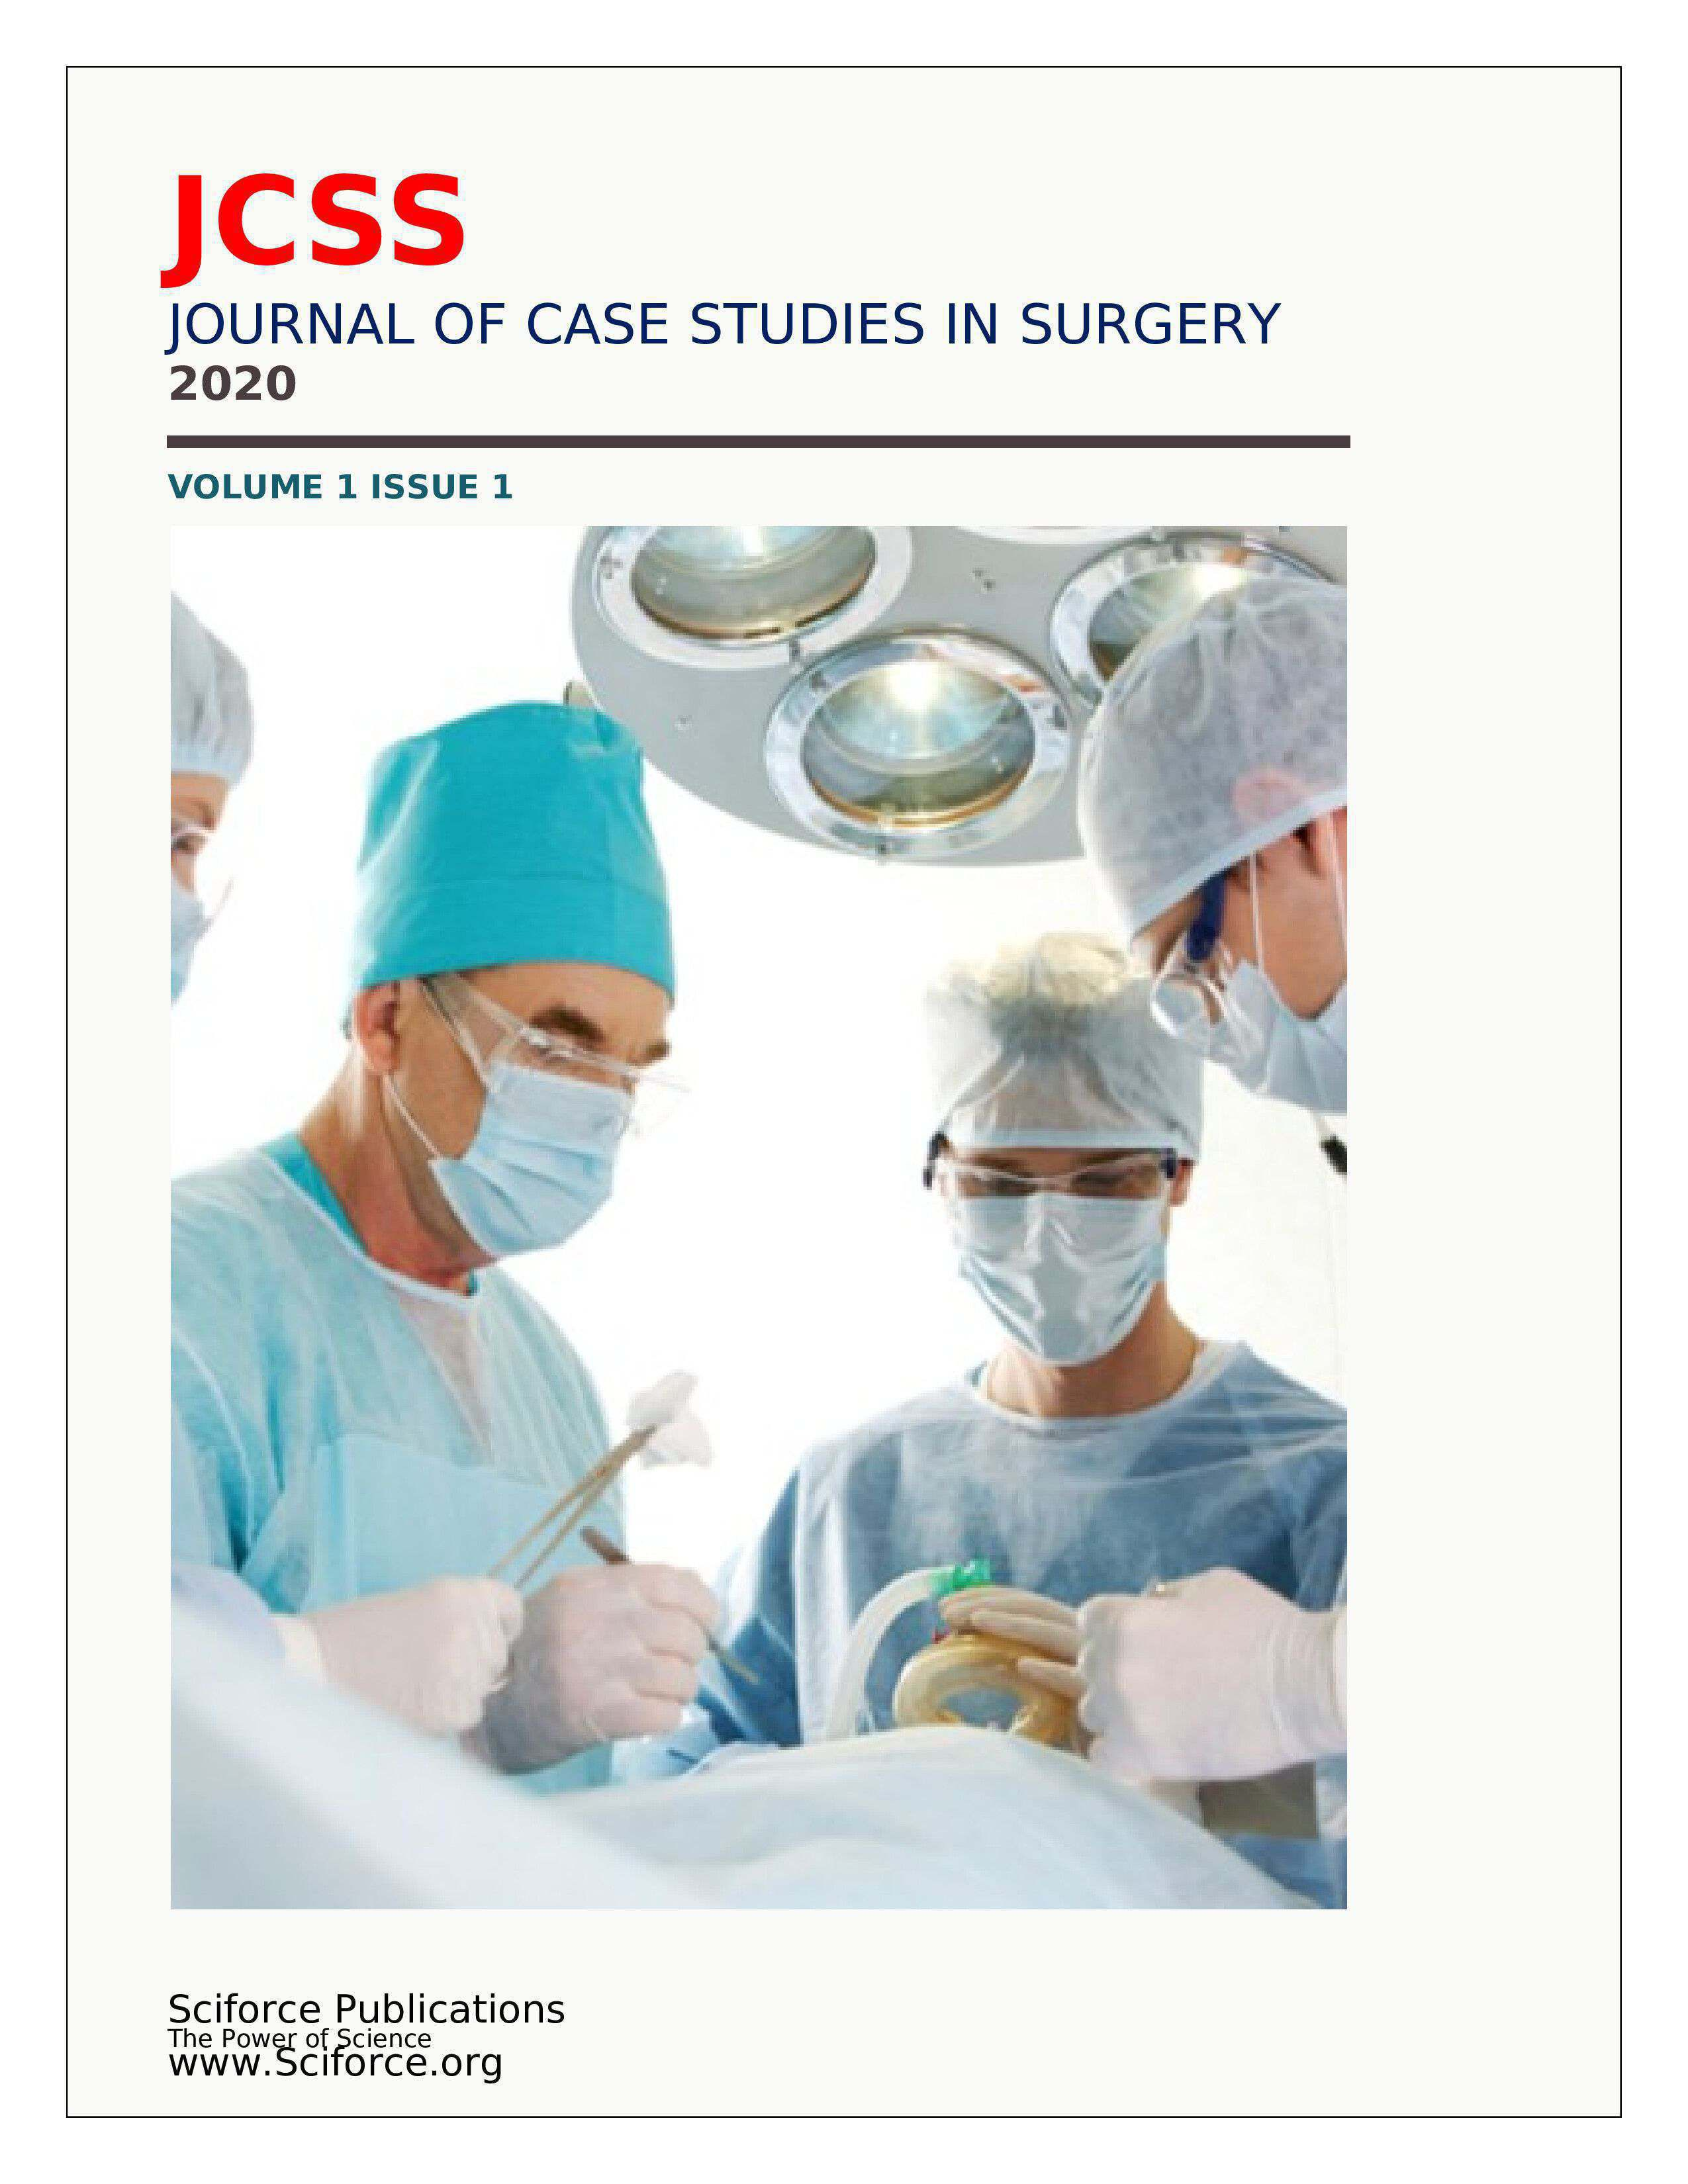 Journal of Case Studies in Surgery